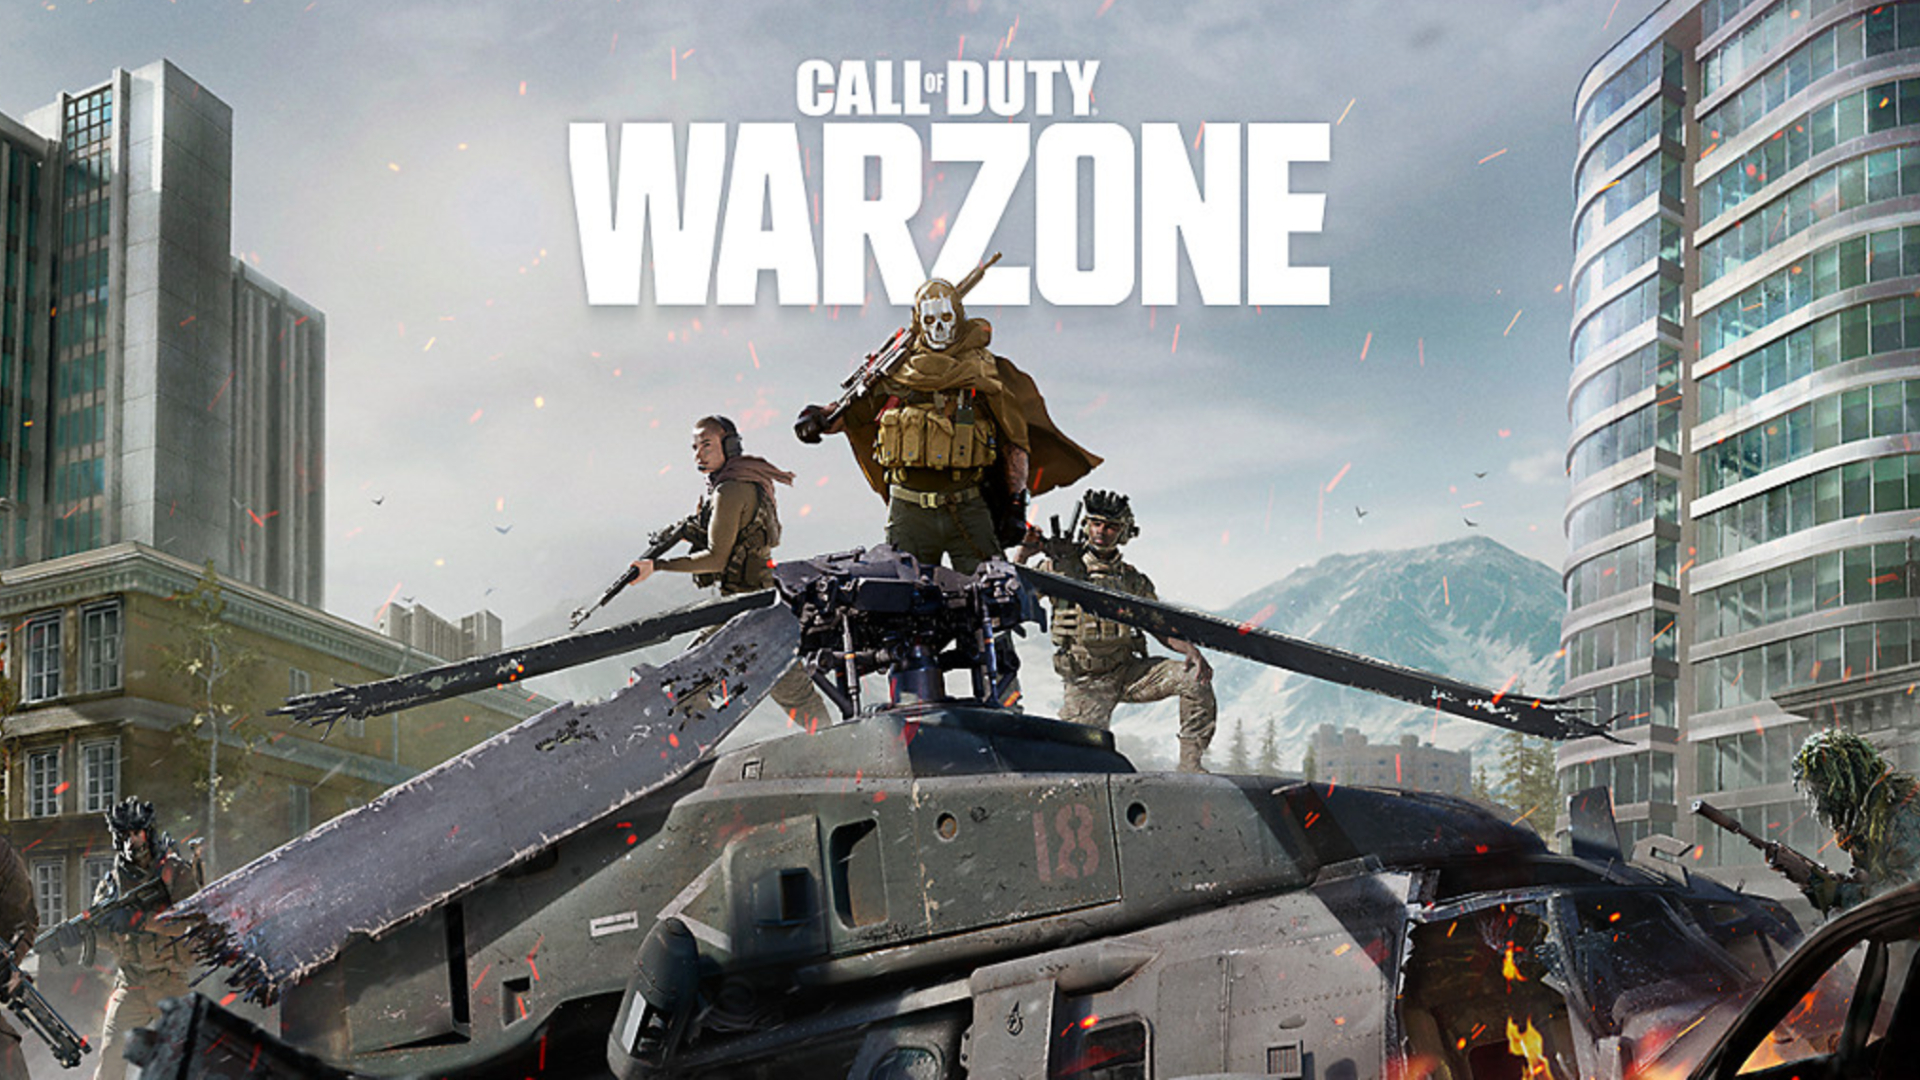 Call of Duty Warzone APK & iOS Latest Version Free